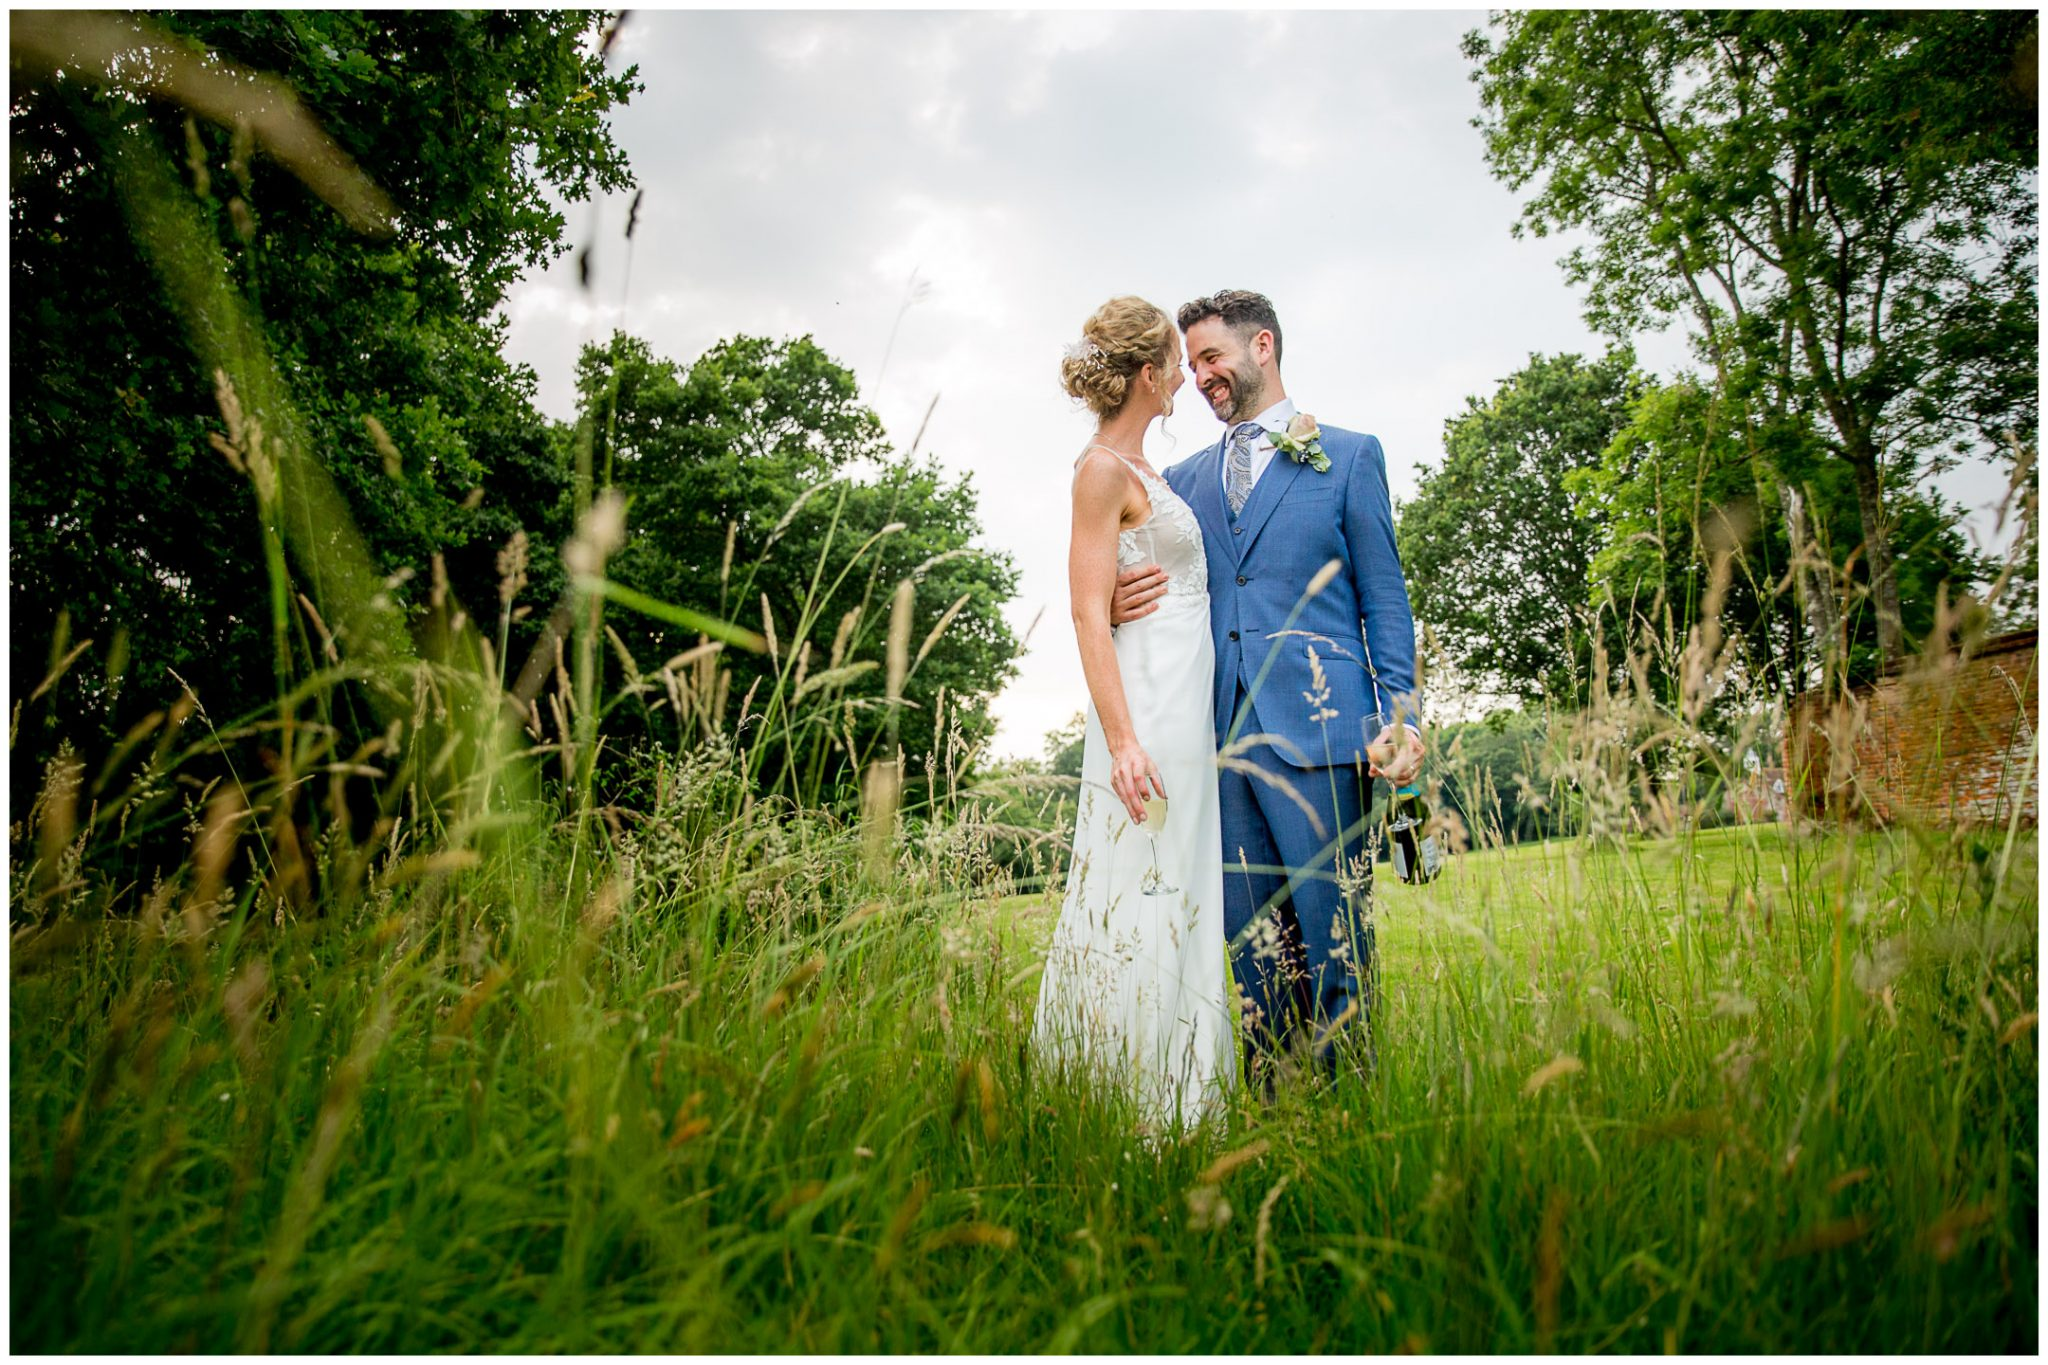 Couple portrait in long grasses at a Summer wedding in the New Forest